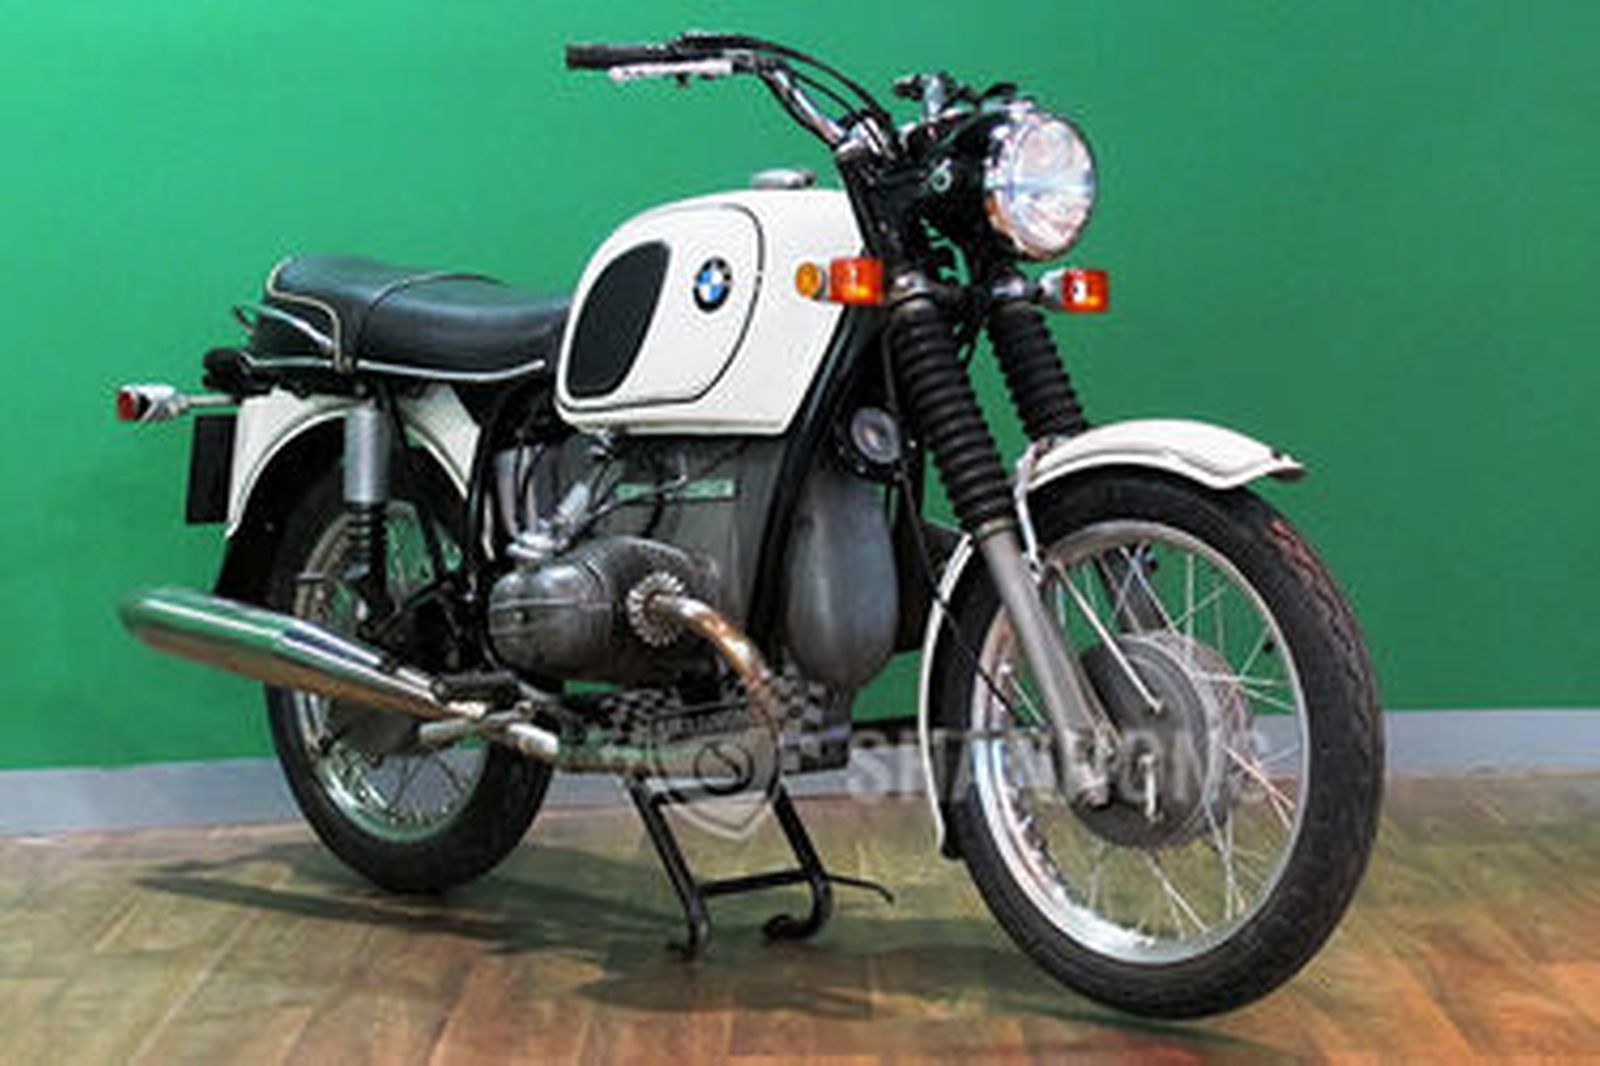 sold bmw r75 5 750cc motorcycle auctions lot ak shannons. Black Bedroom Furniture Sets. Home Design Ideas